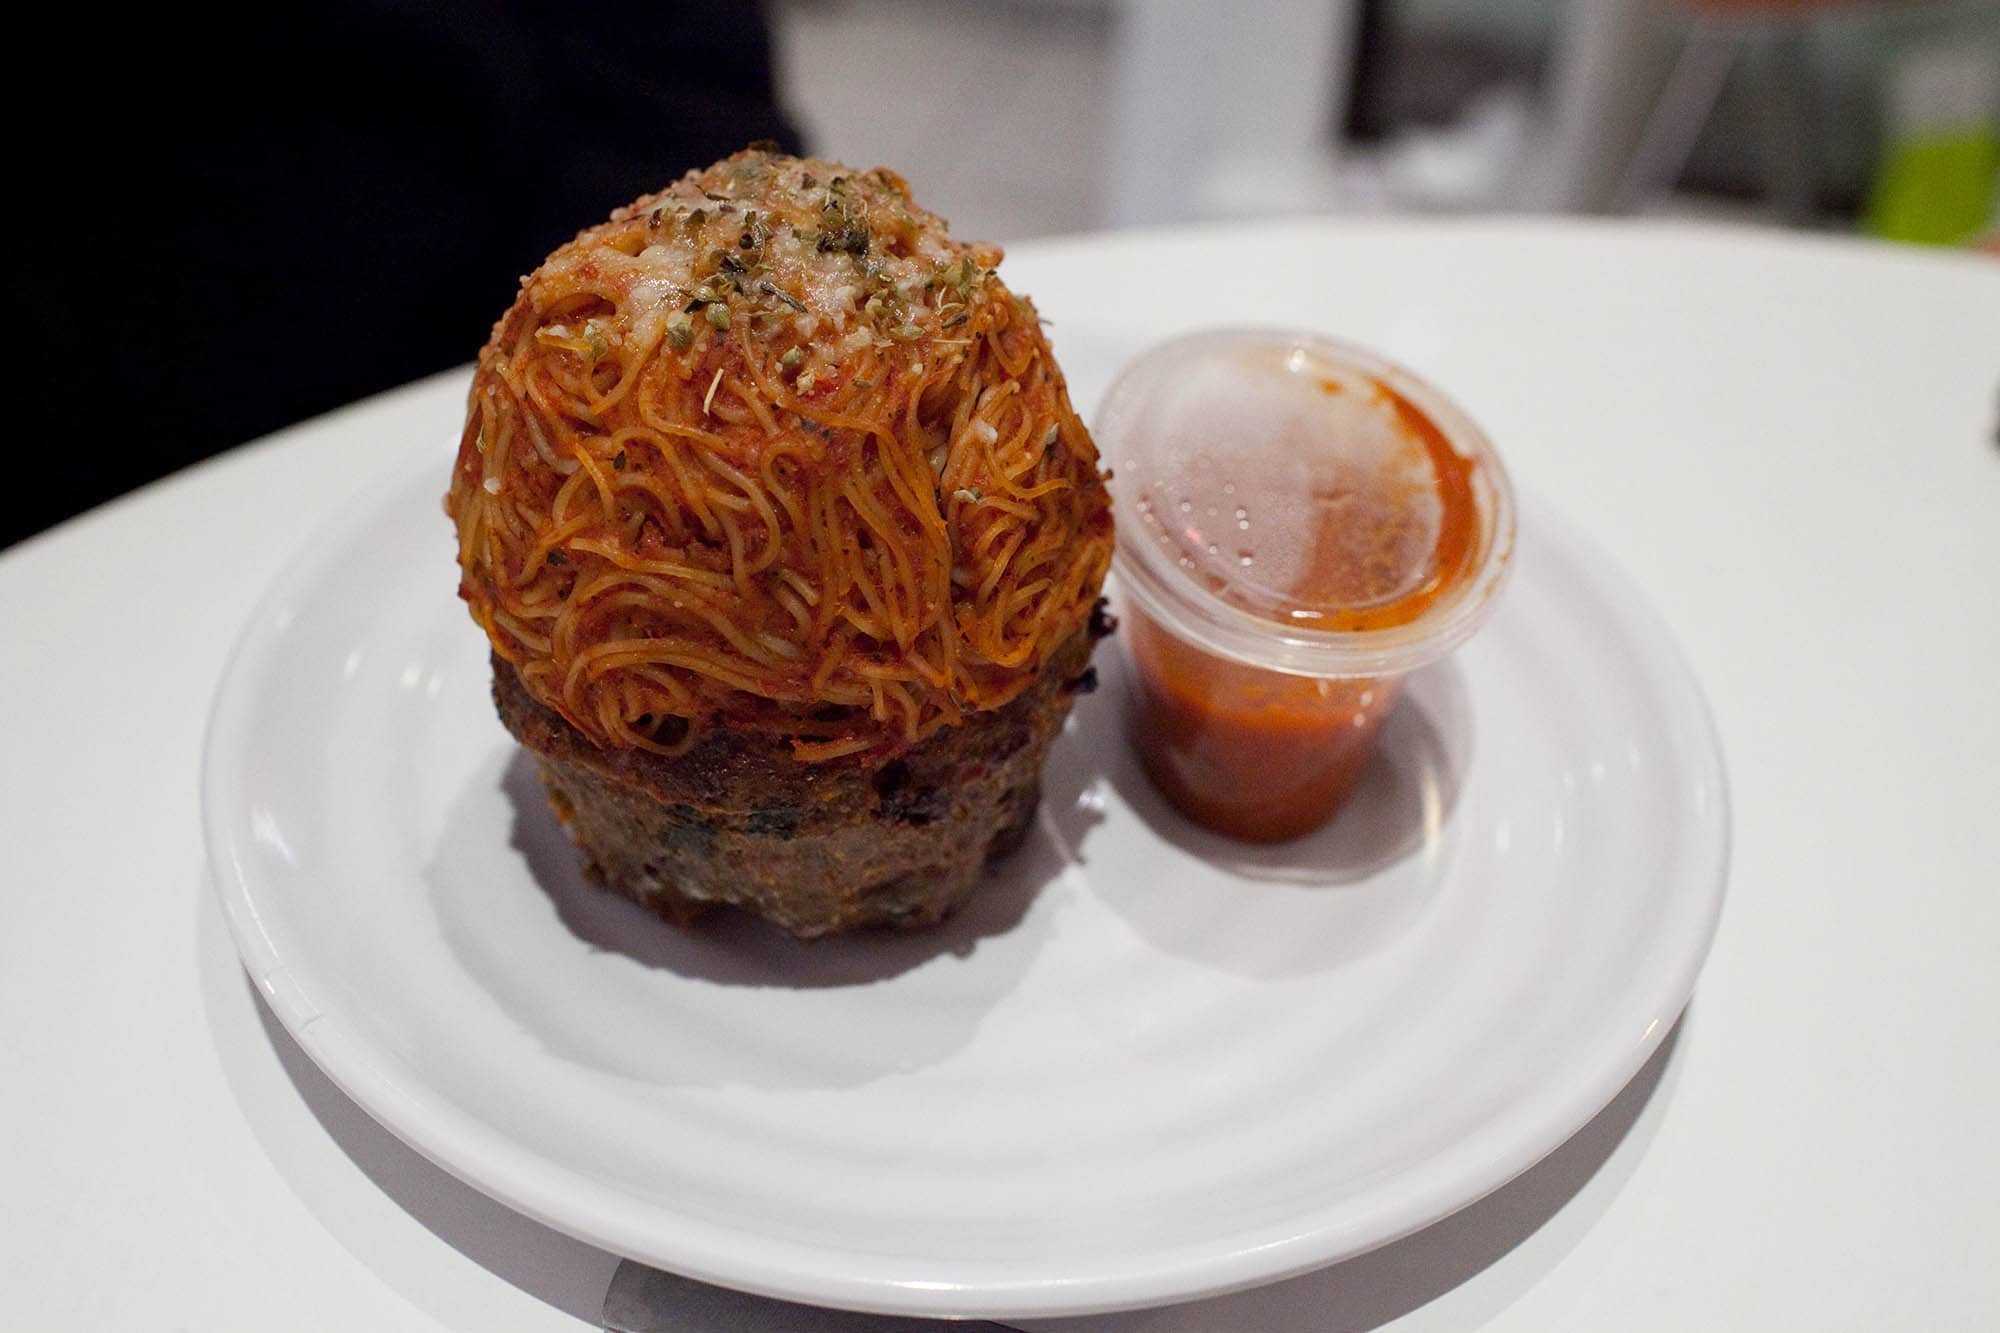 The Meatloaf Bakery in Chicago - Loaf-a-Roma Meatloaf Cupcake - beef and Italian sausage with mozzarella cheese, sun dried tomatoes, basil and red wine topped with angel hair pasta and served with marinara sauce.